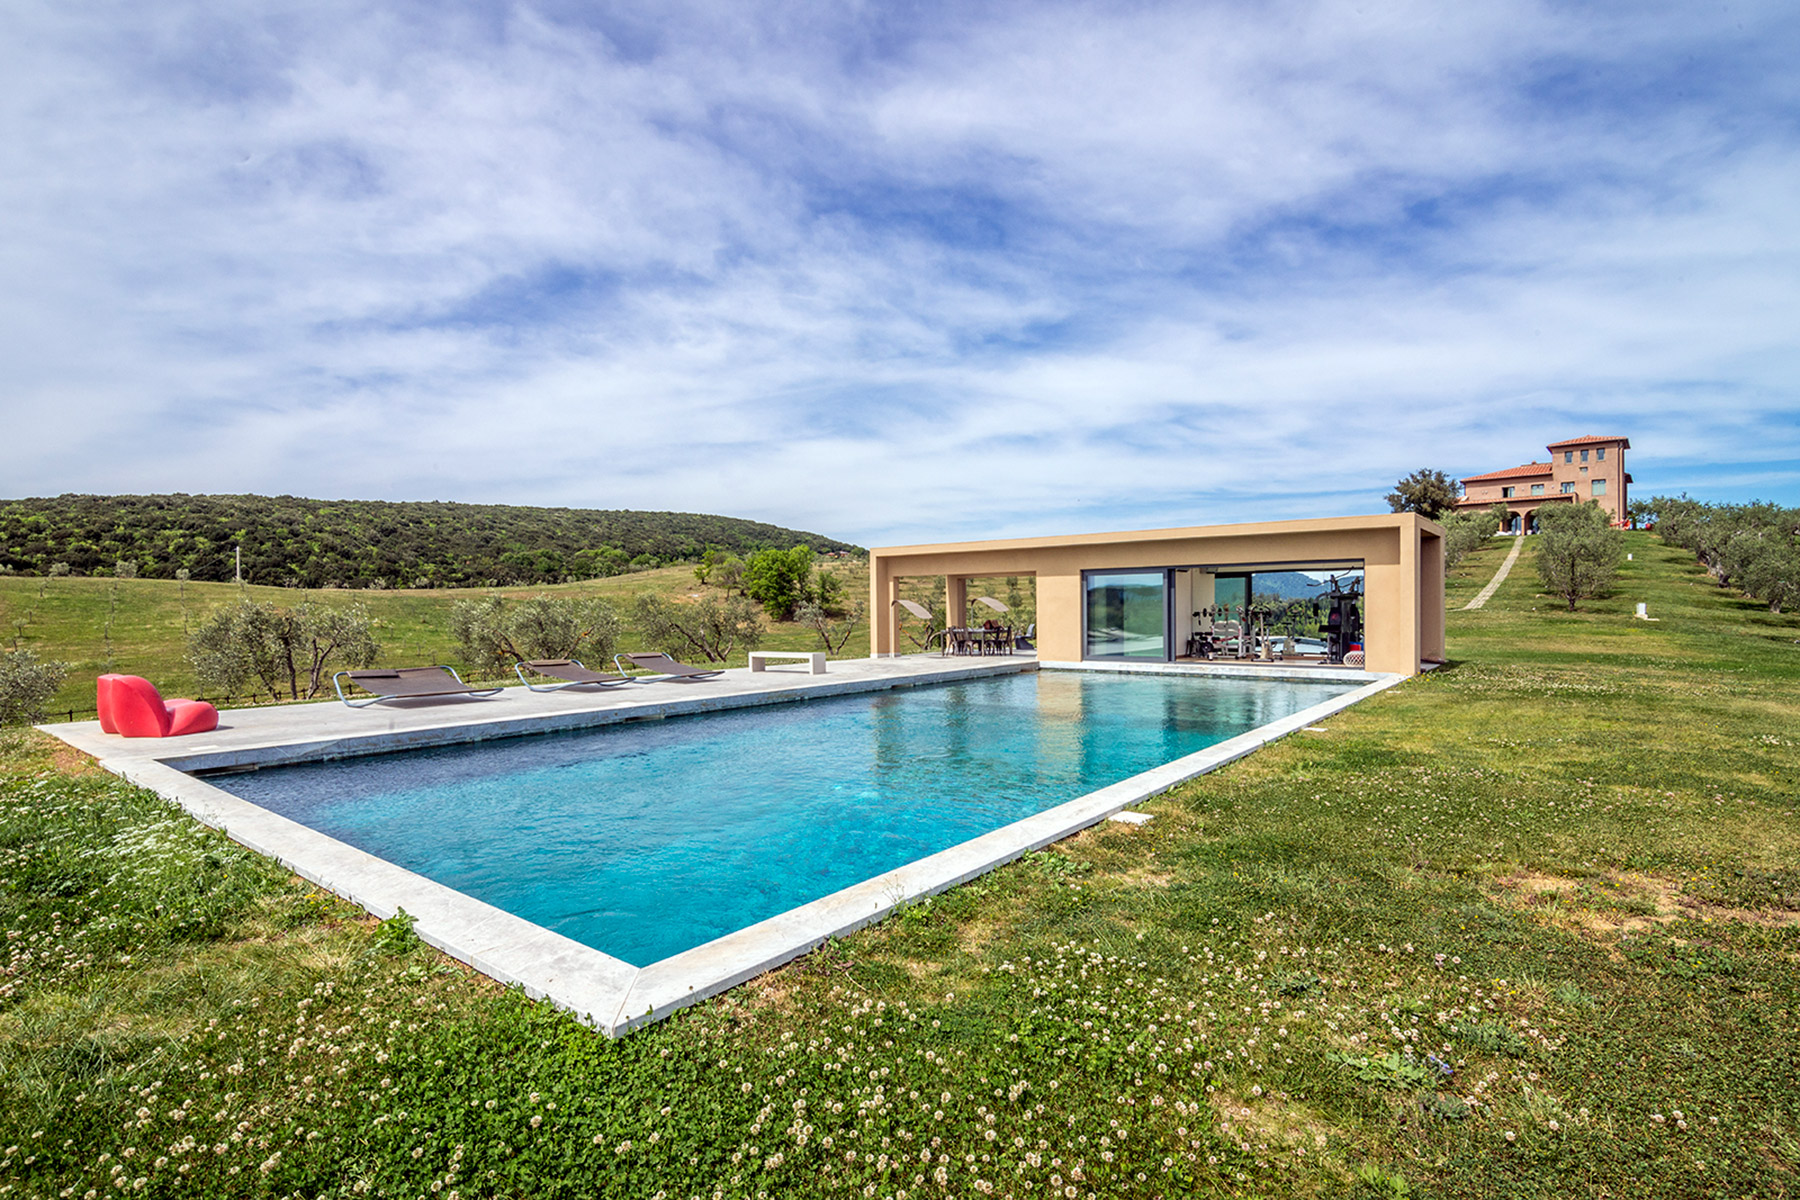 Single Family Home for Sale at Unique luxury contemporary villa in an olive grove estate Massa Marittima, Grosseto Italy